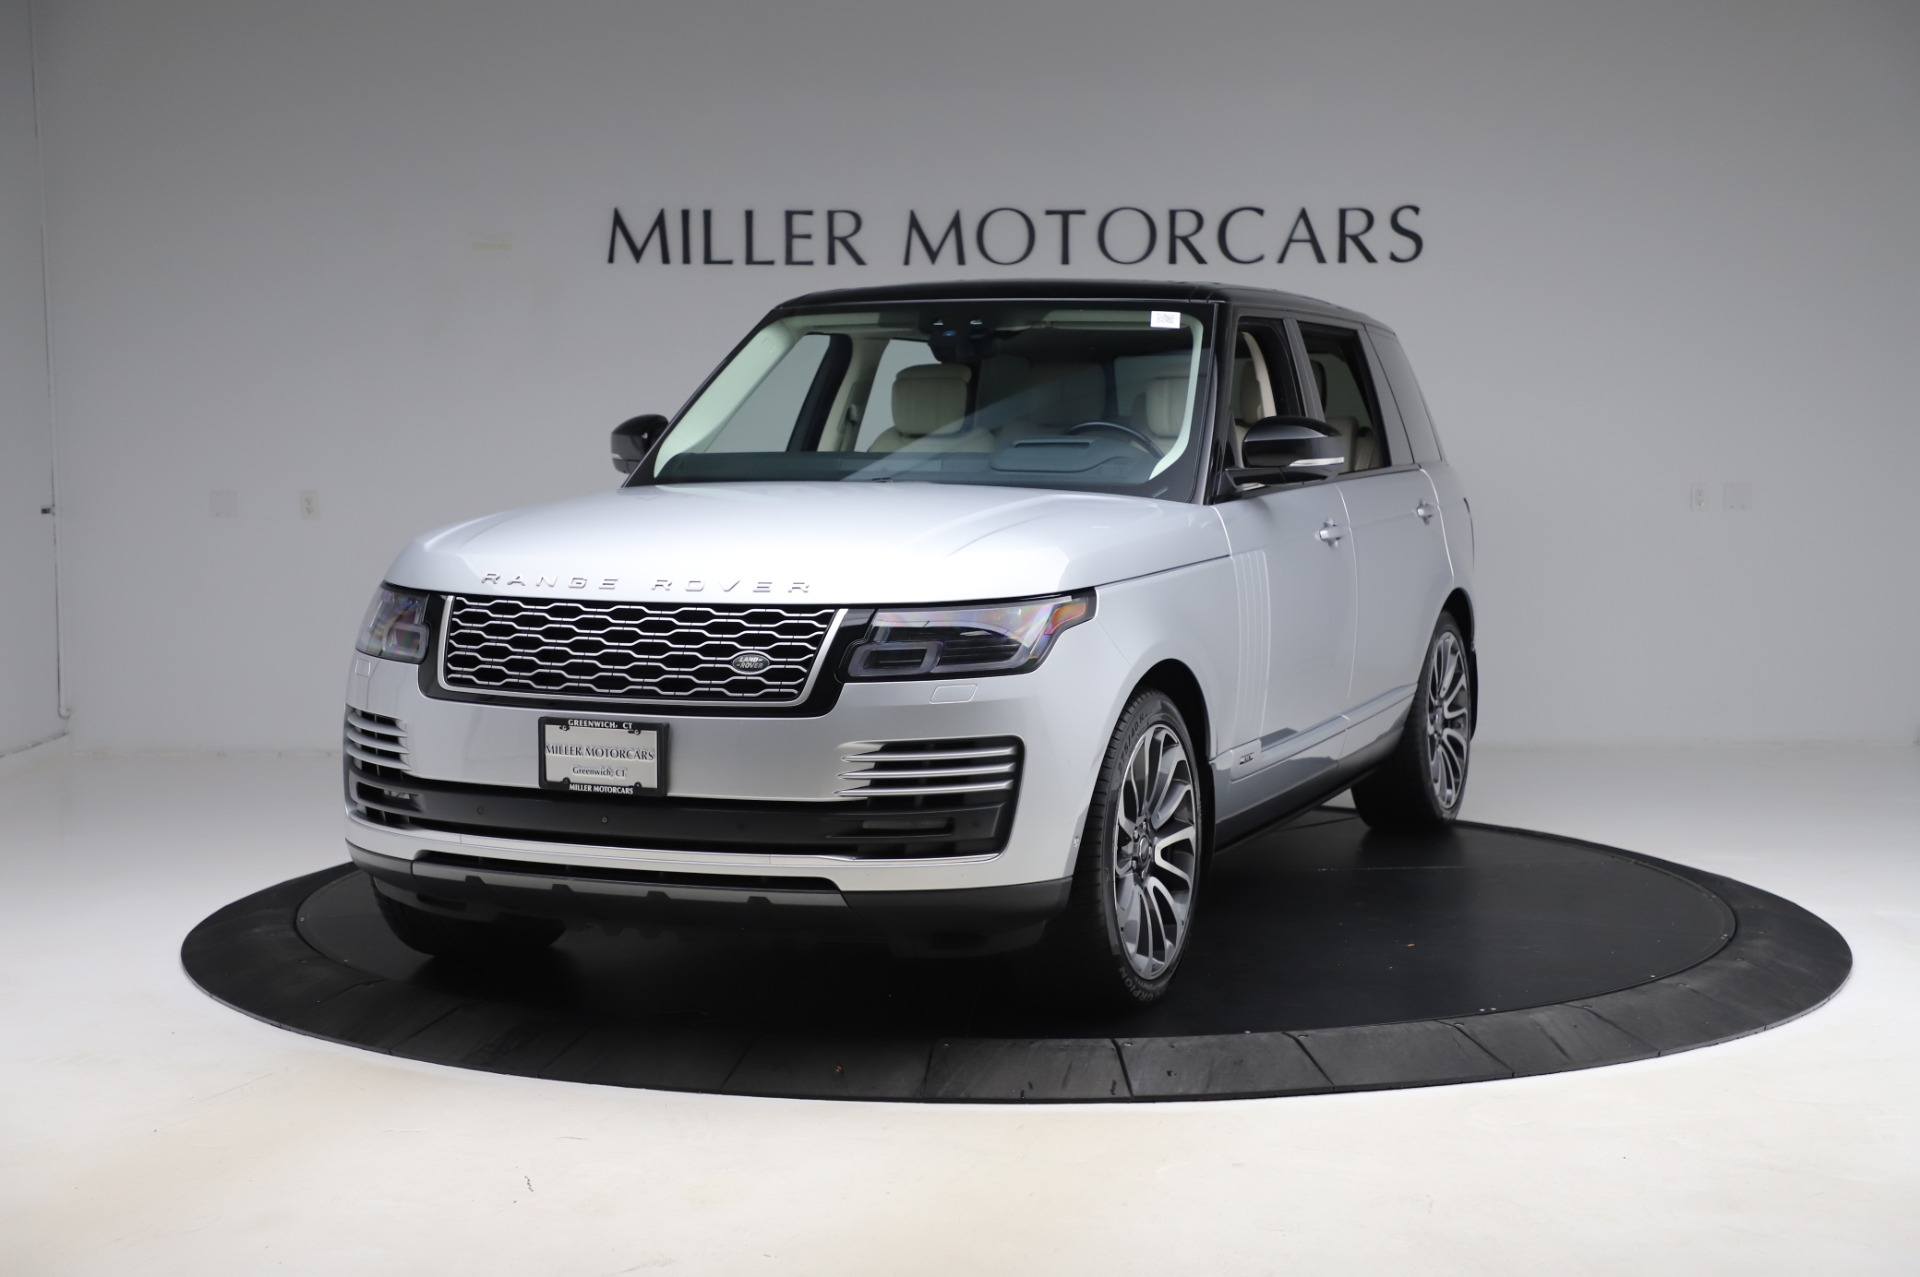 Used 2019 Land Rover Range Rover Supercharged LWB for sale Sold at Bentley Greenwich in Greenwich CT 06830 1